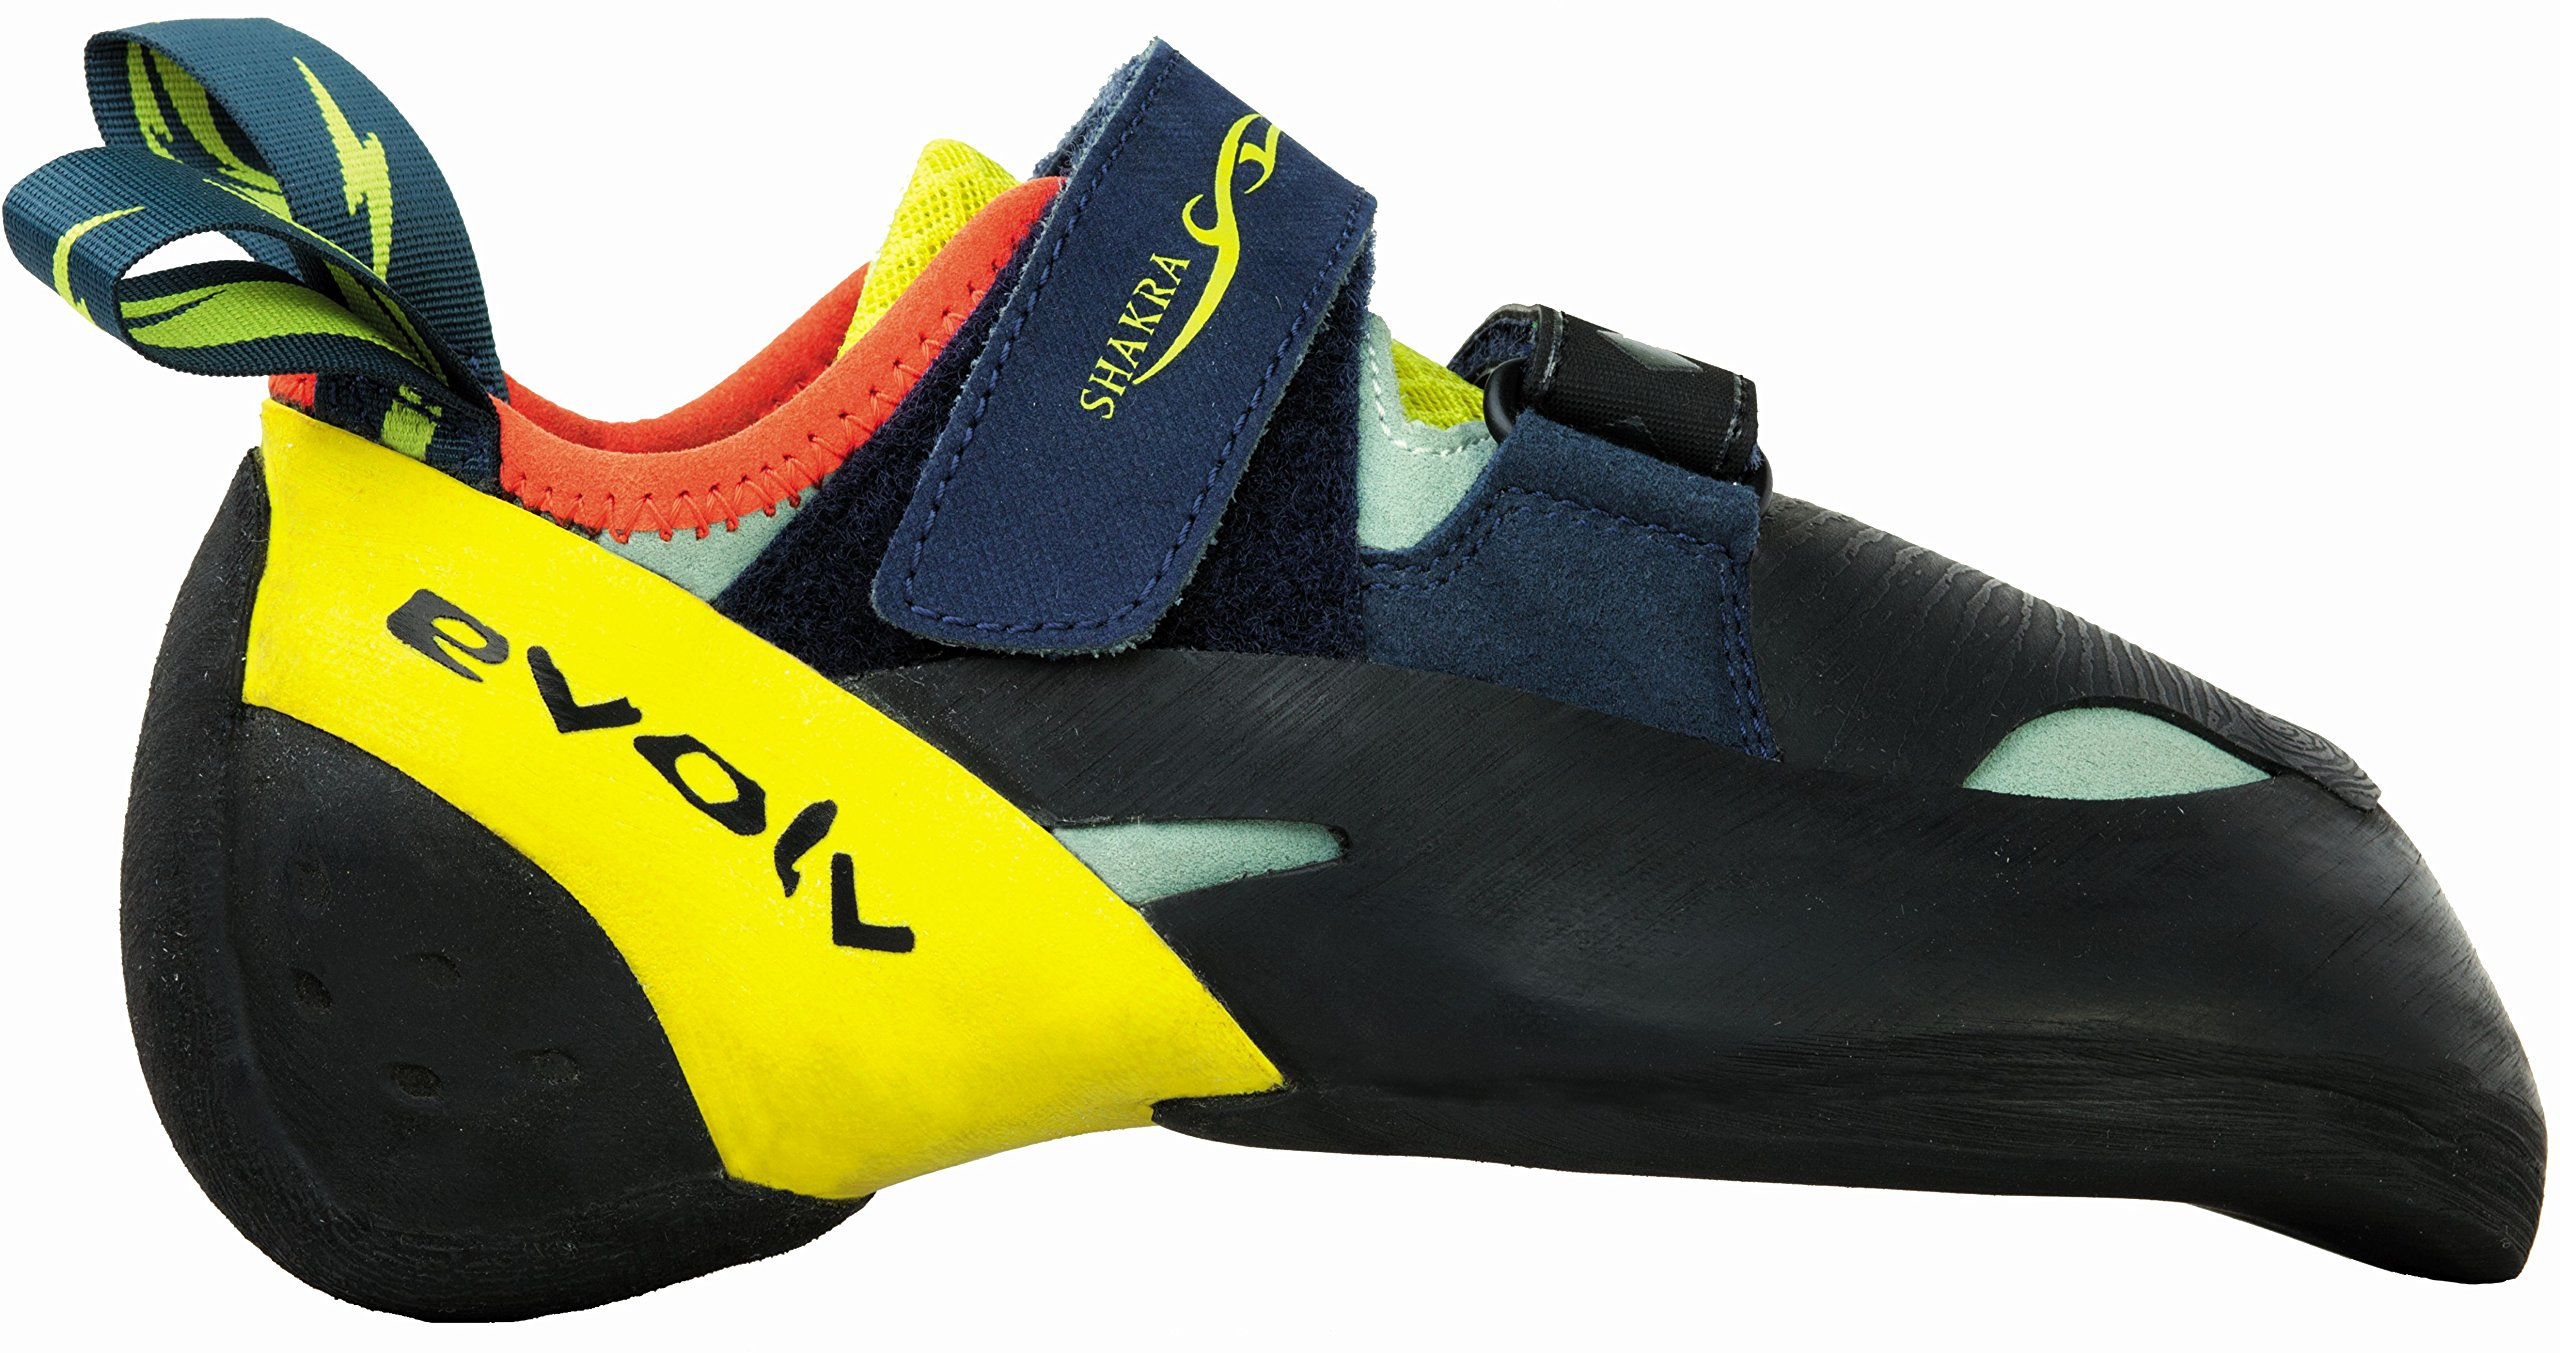 Evolv Shakra Climbing Shoe - Aqua/Neon Yellow 6.5